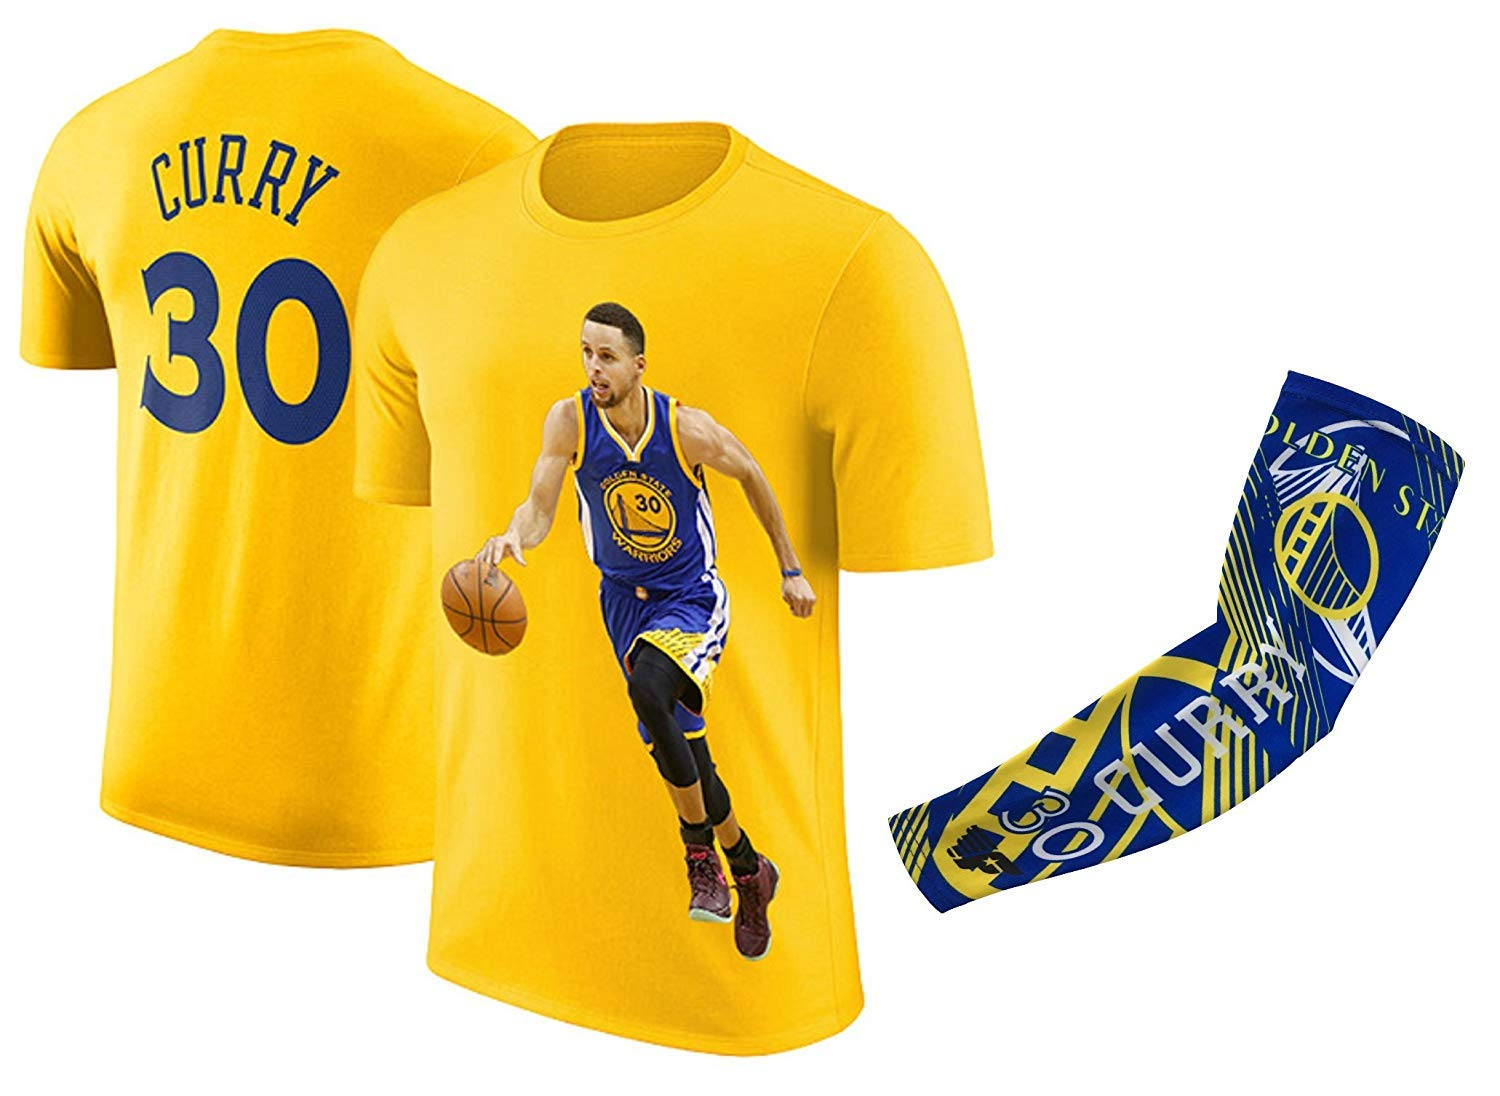 pretty nice 39b3a 7472a Steph Curry Jersey Style T-shirt Kids Curry Blue T-shirt Gift Set Youth  Sizes ✓ Premium Quality ✓ Lightweight Breathable Fabric ✓ Basketball  Backpack ...